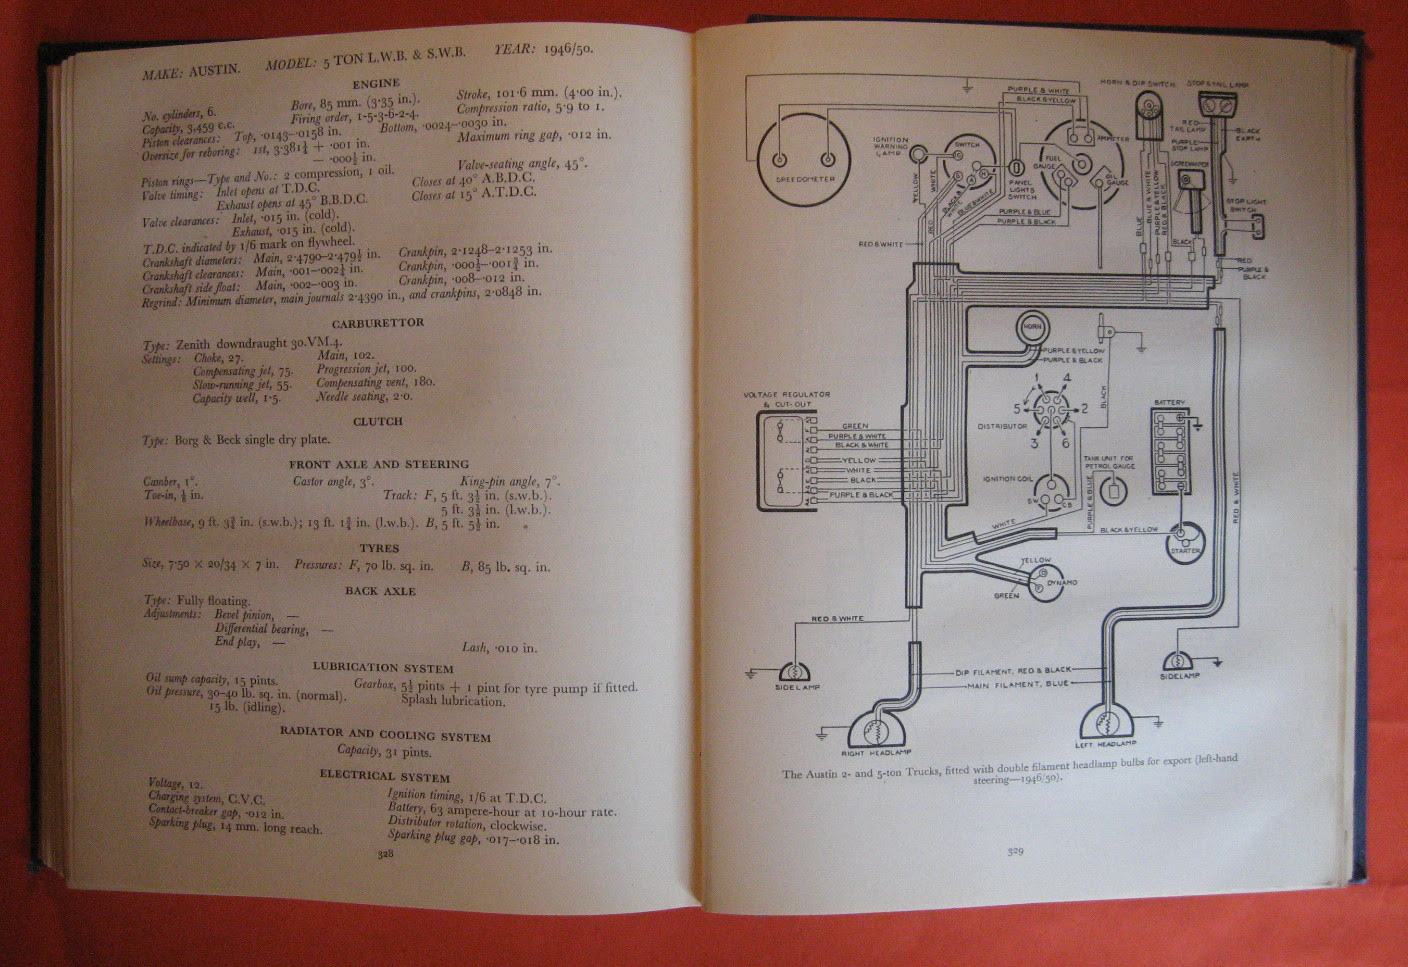 Yamaha Yl2 Wiring Diagram Wiring Diagrams Chatter Chatter Chatteriedelavalleedufelin Fr